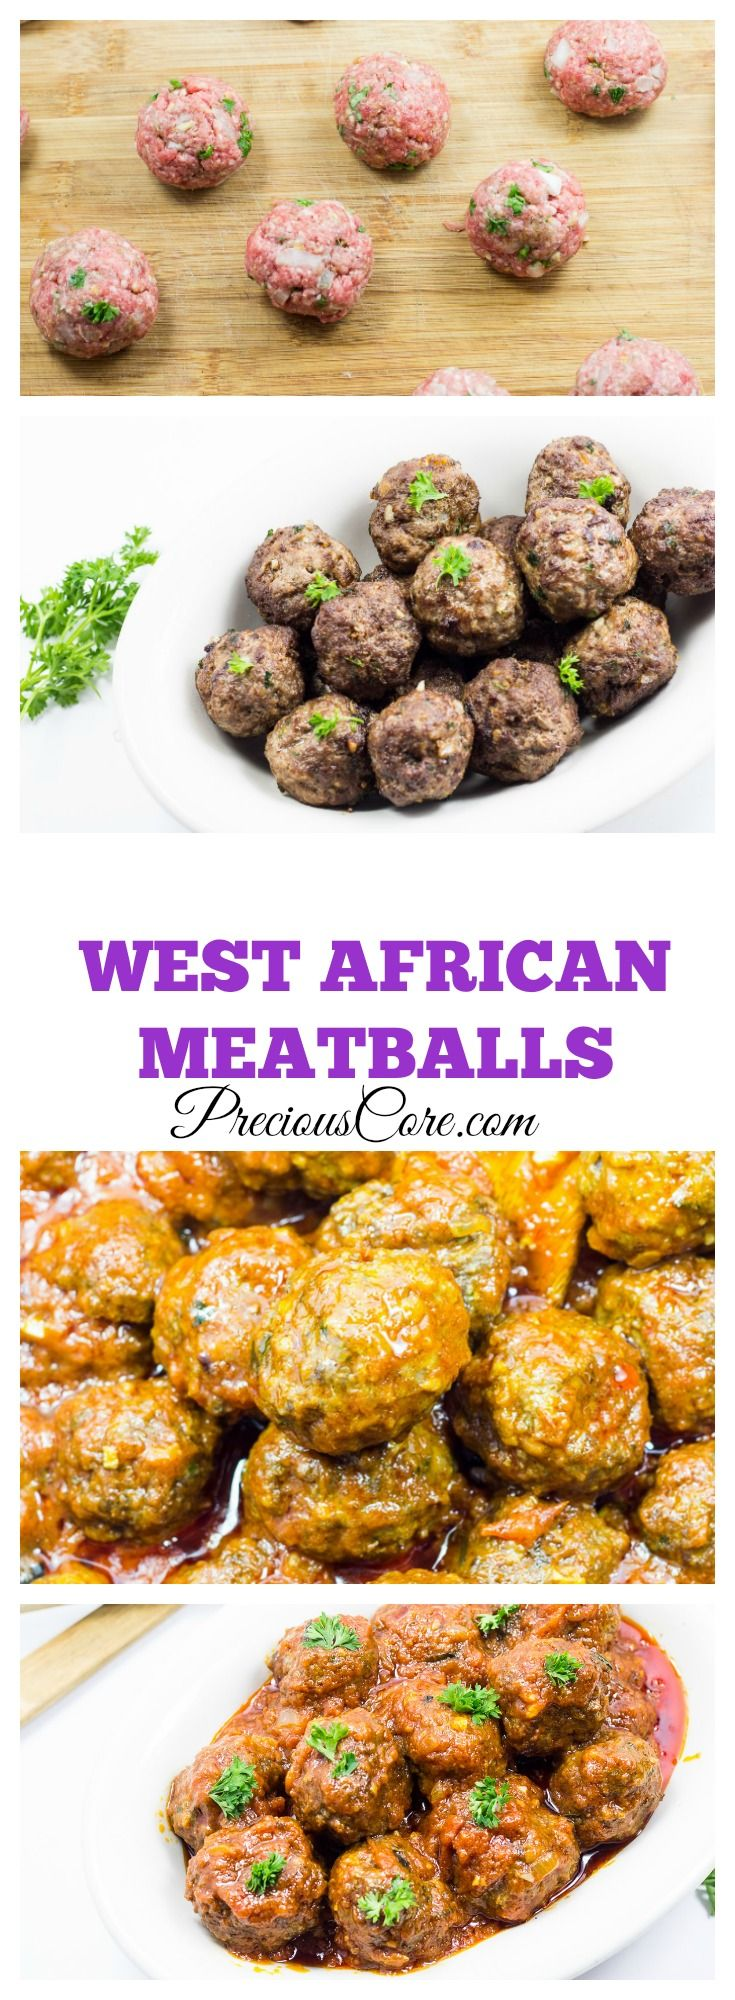 Meatballs in tomato sauce - West African style